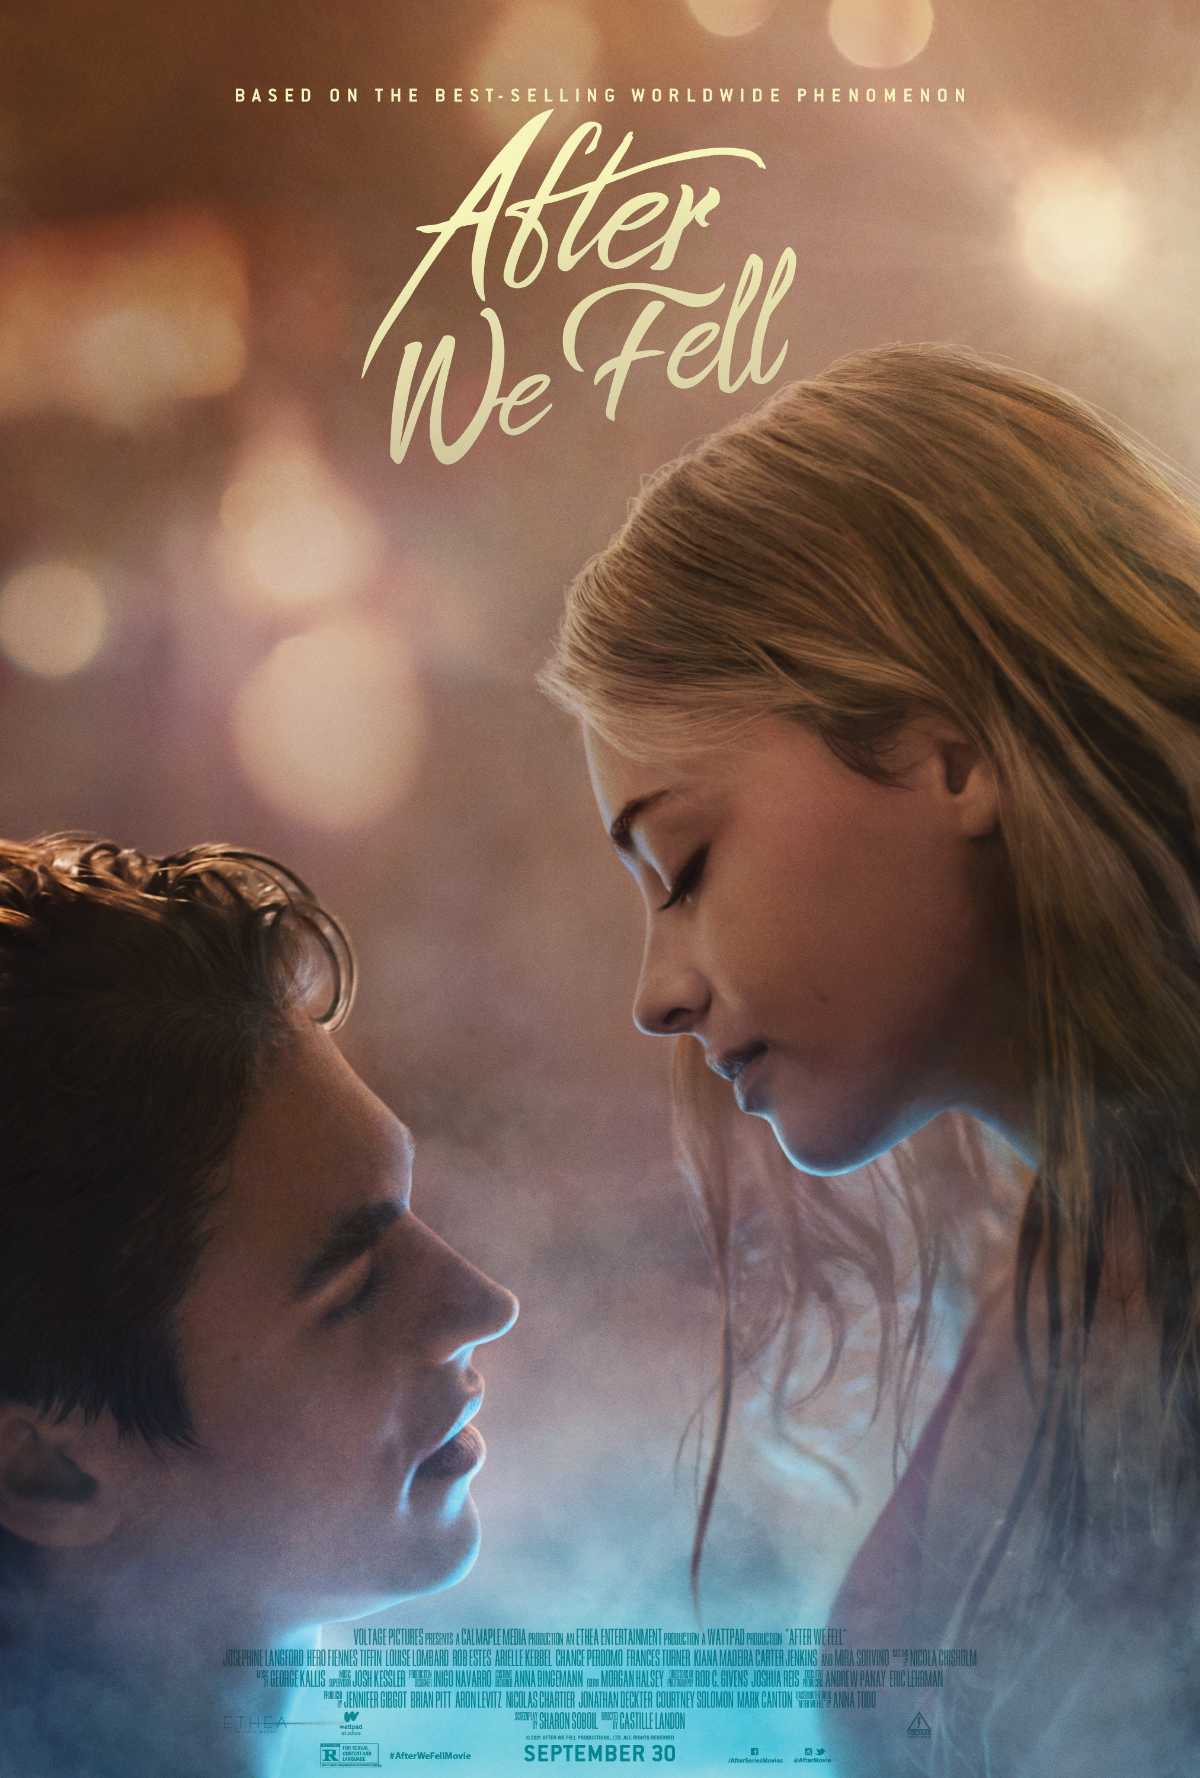 After We Fell Movie Trailer, Posters and Release Date - VitalThrills.com